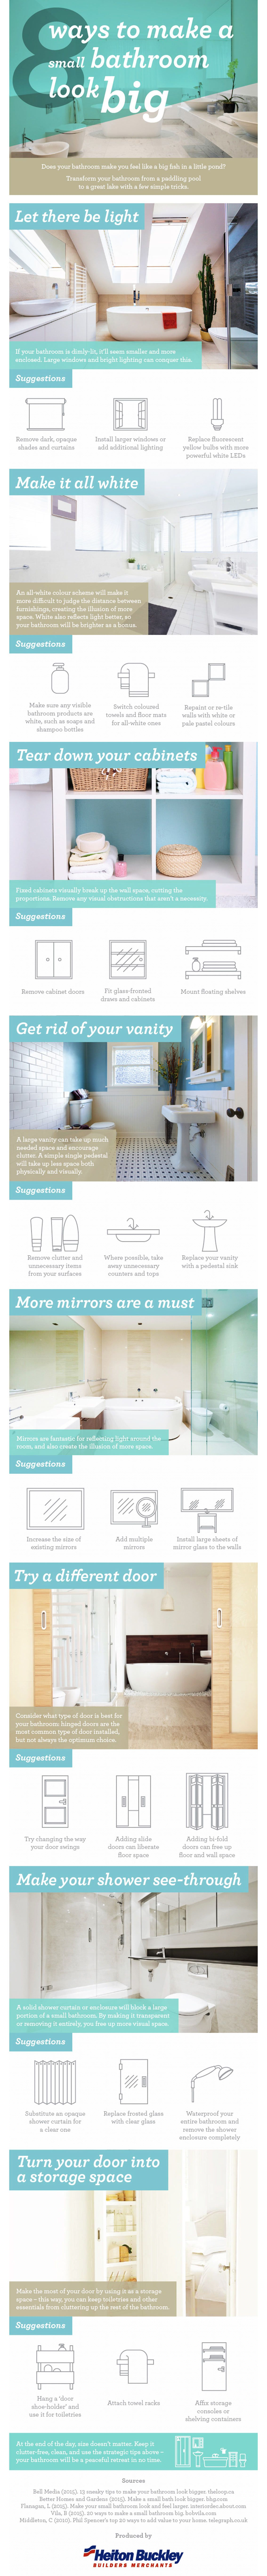 8 Tips to Make a Small Bathroom Look Bigger [Infographic] | Home ...